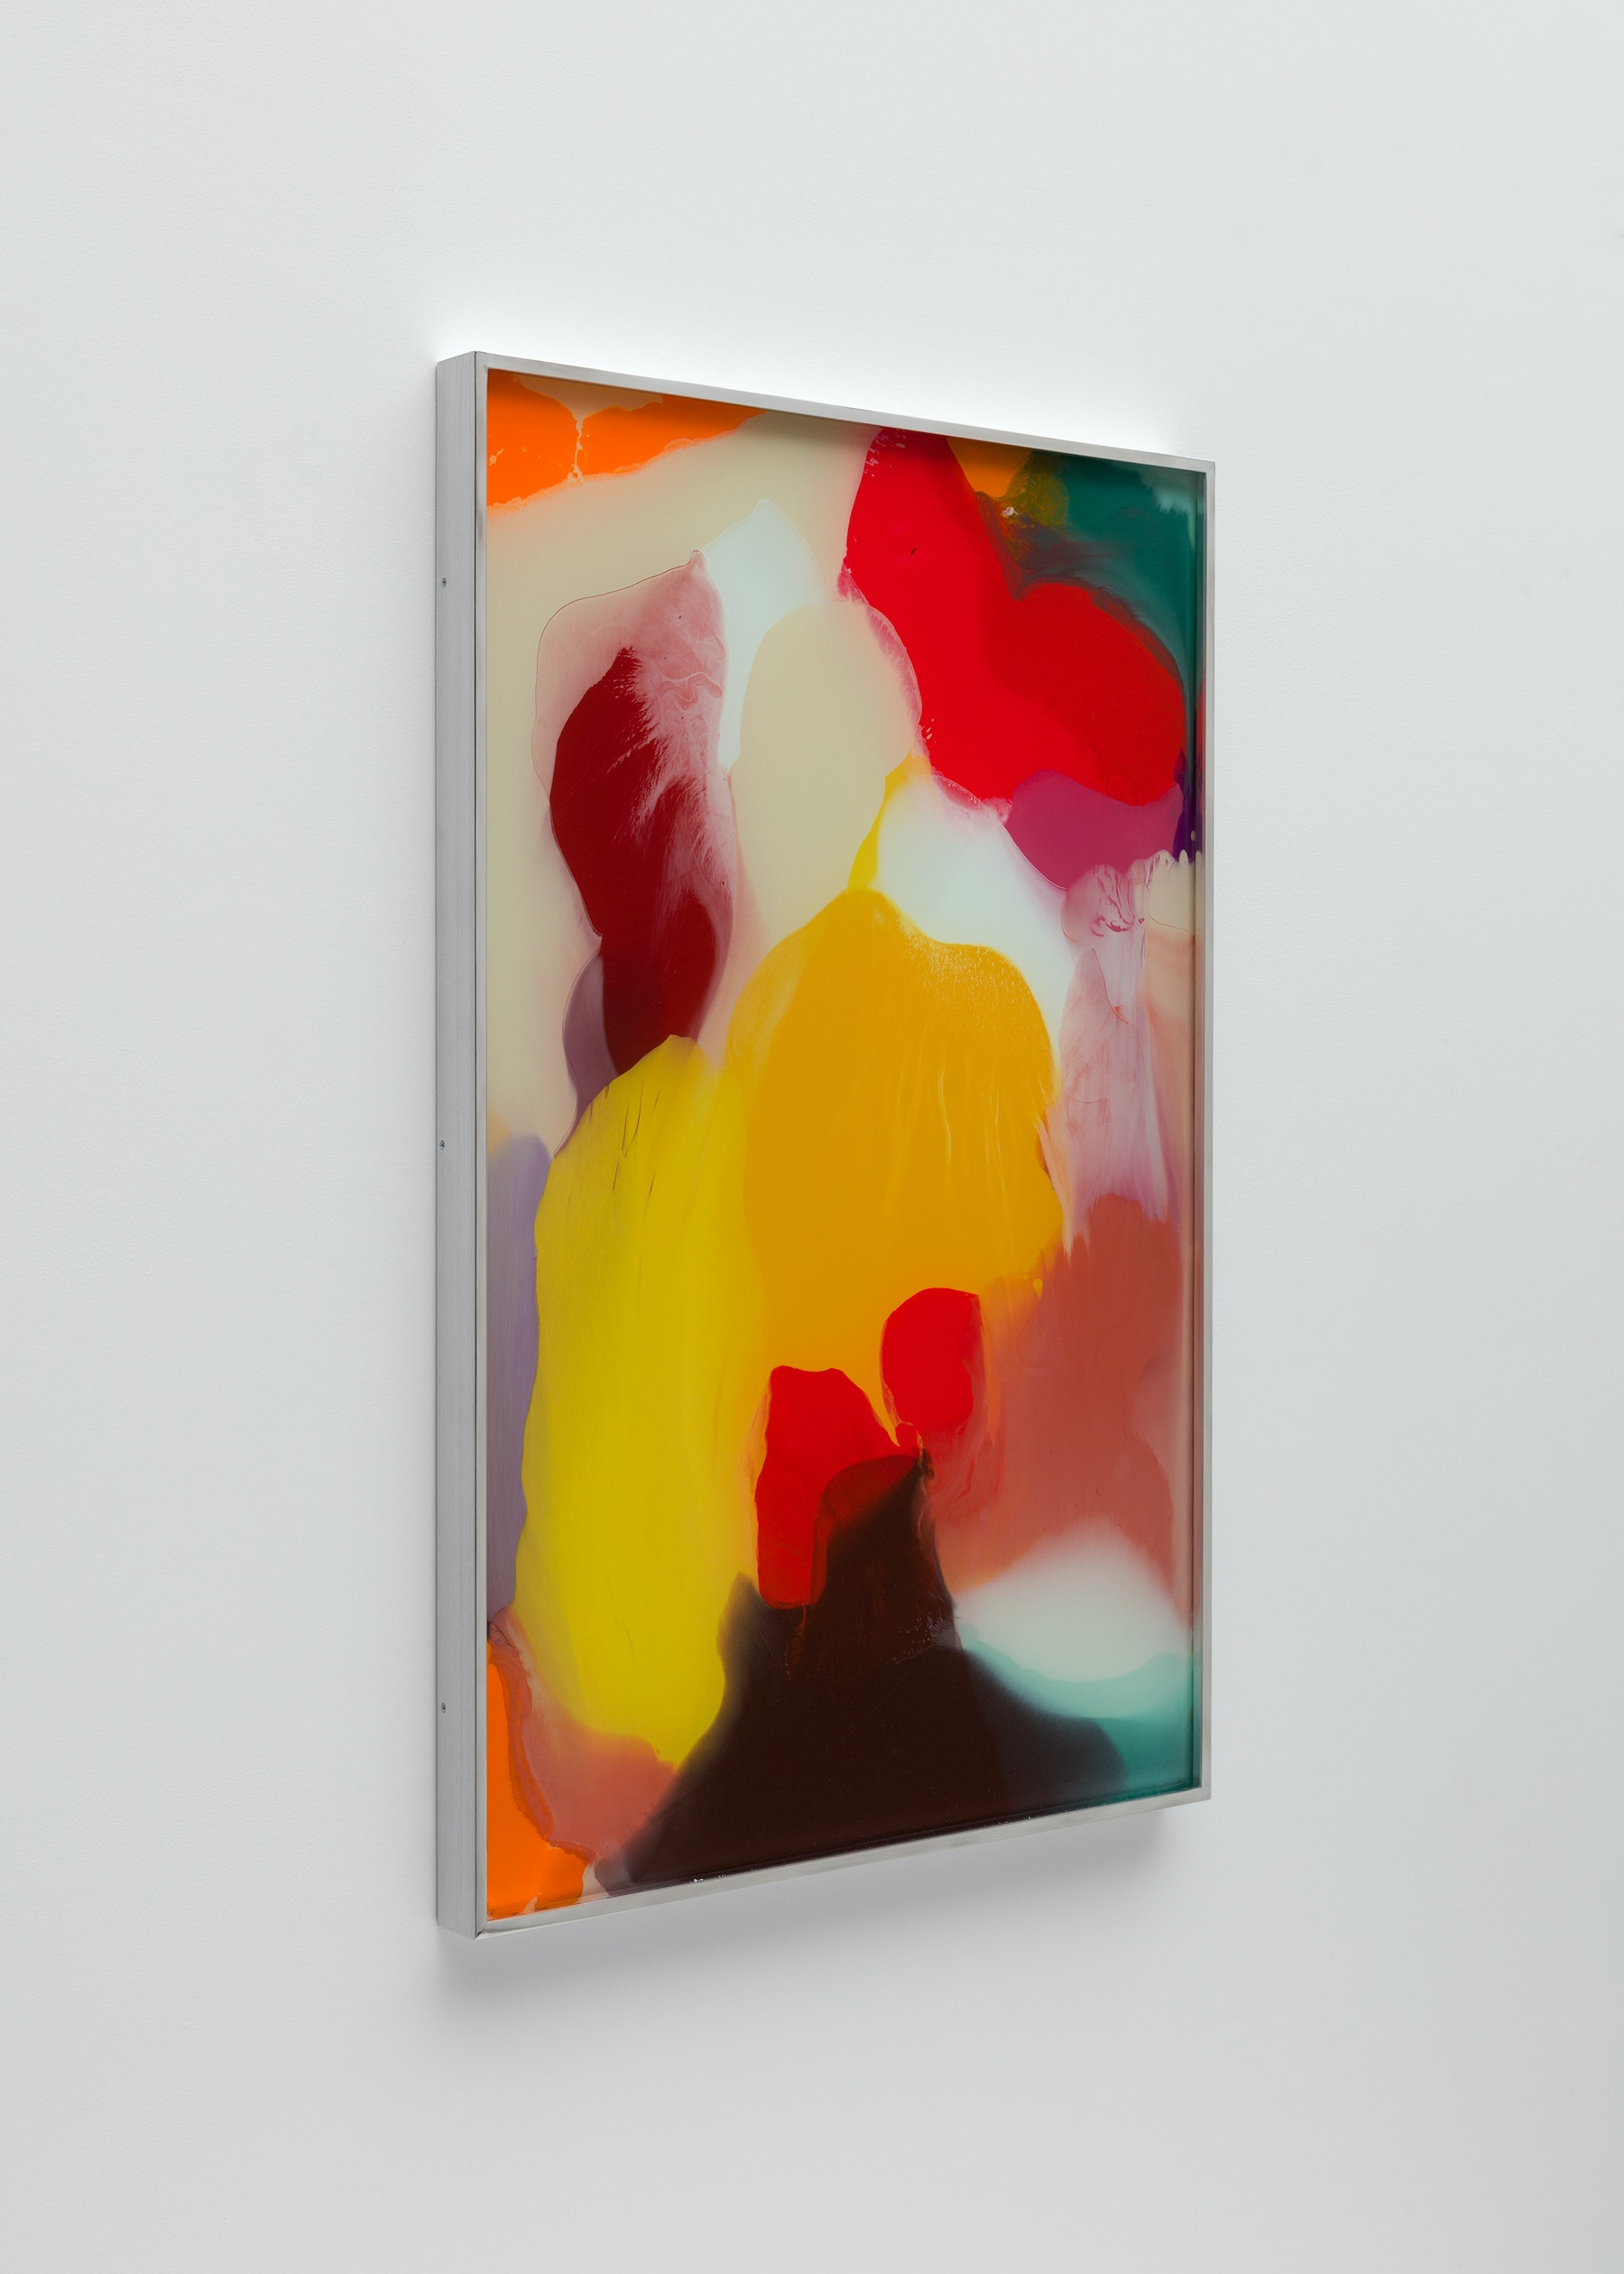 "Yunhee Min ""Up Close in Distance (variation study b4),"" 2018 Enamel on laminated glass 34.5 x 22.5"" [HxW] (87.63 x 57.15 cm) Inventory #MIN341 Courtesy of the artist and Vielmetter Los Angeles Photo credit: Brica Wilcox"